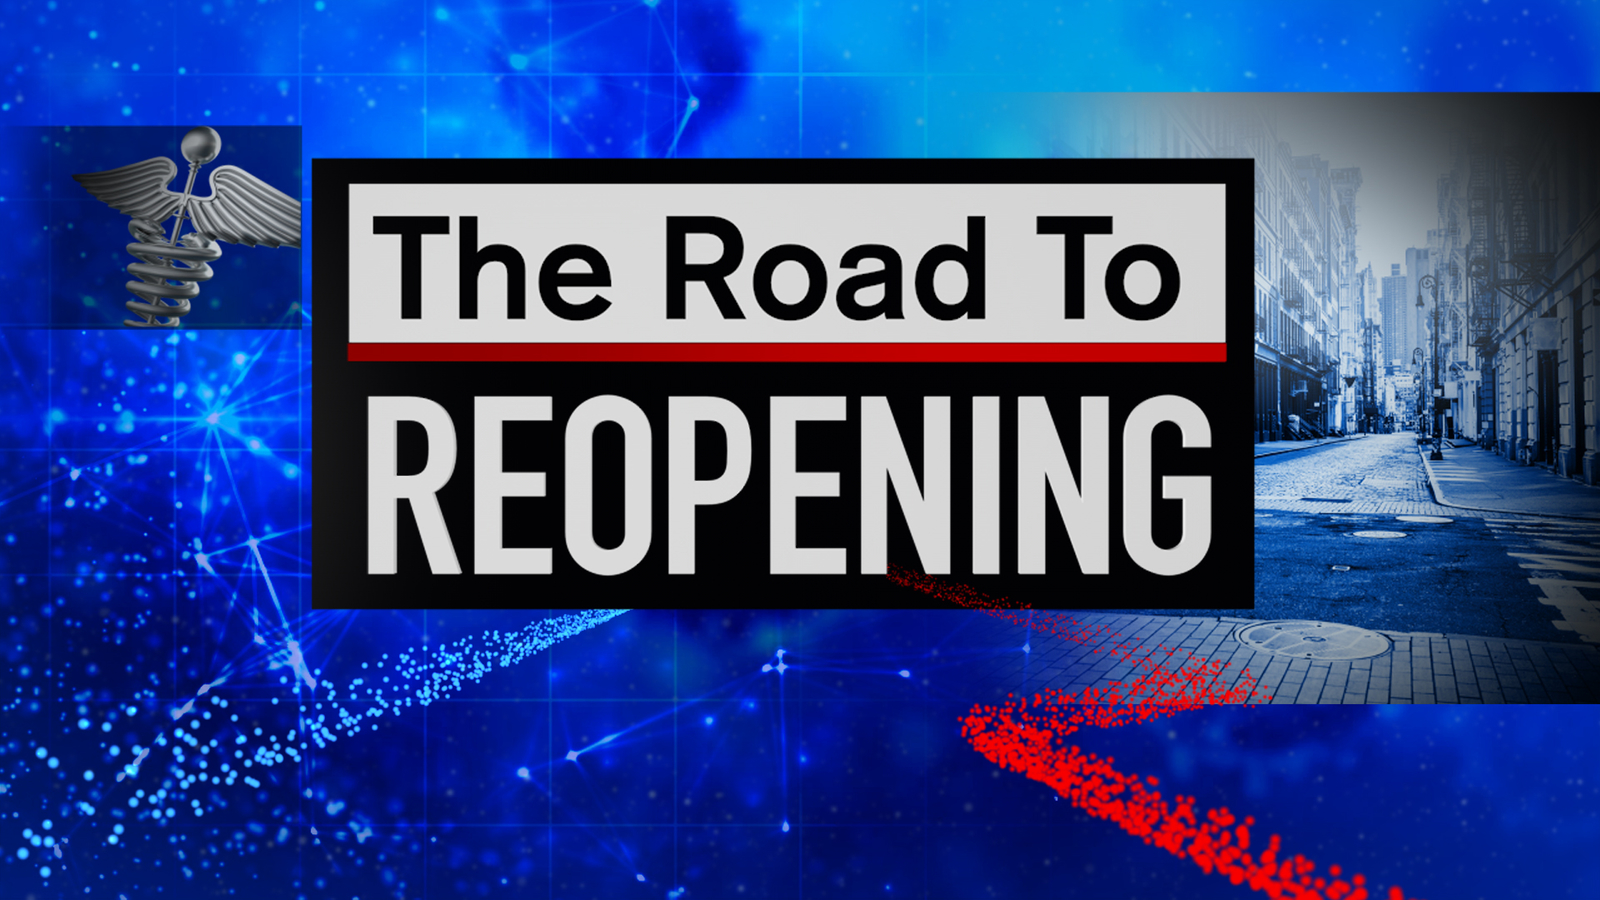 The Road to Reopening